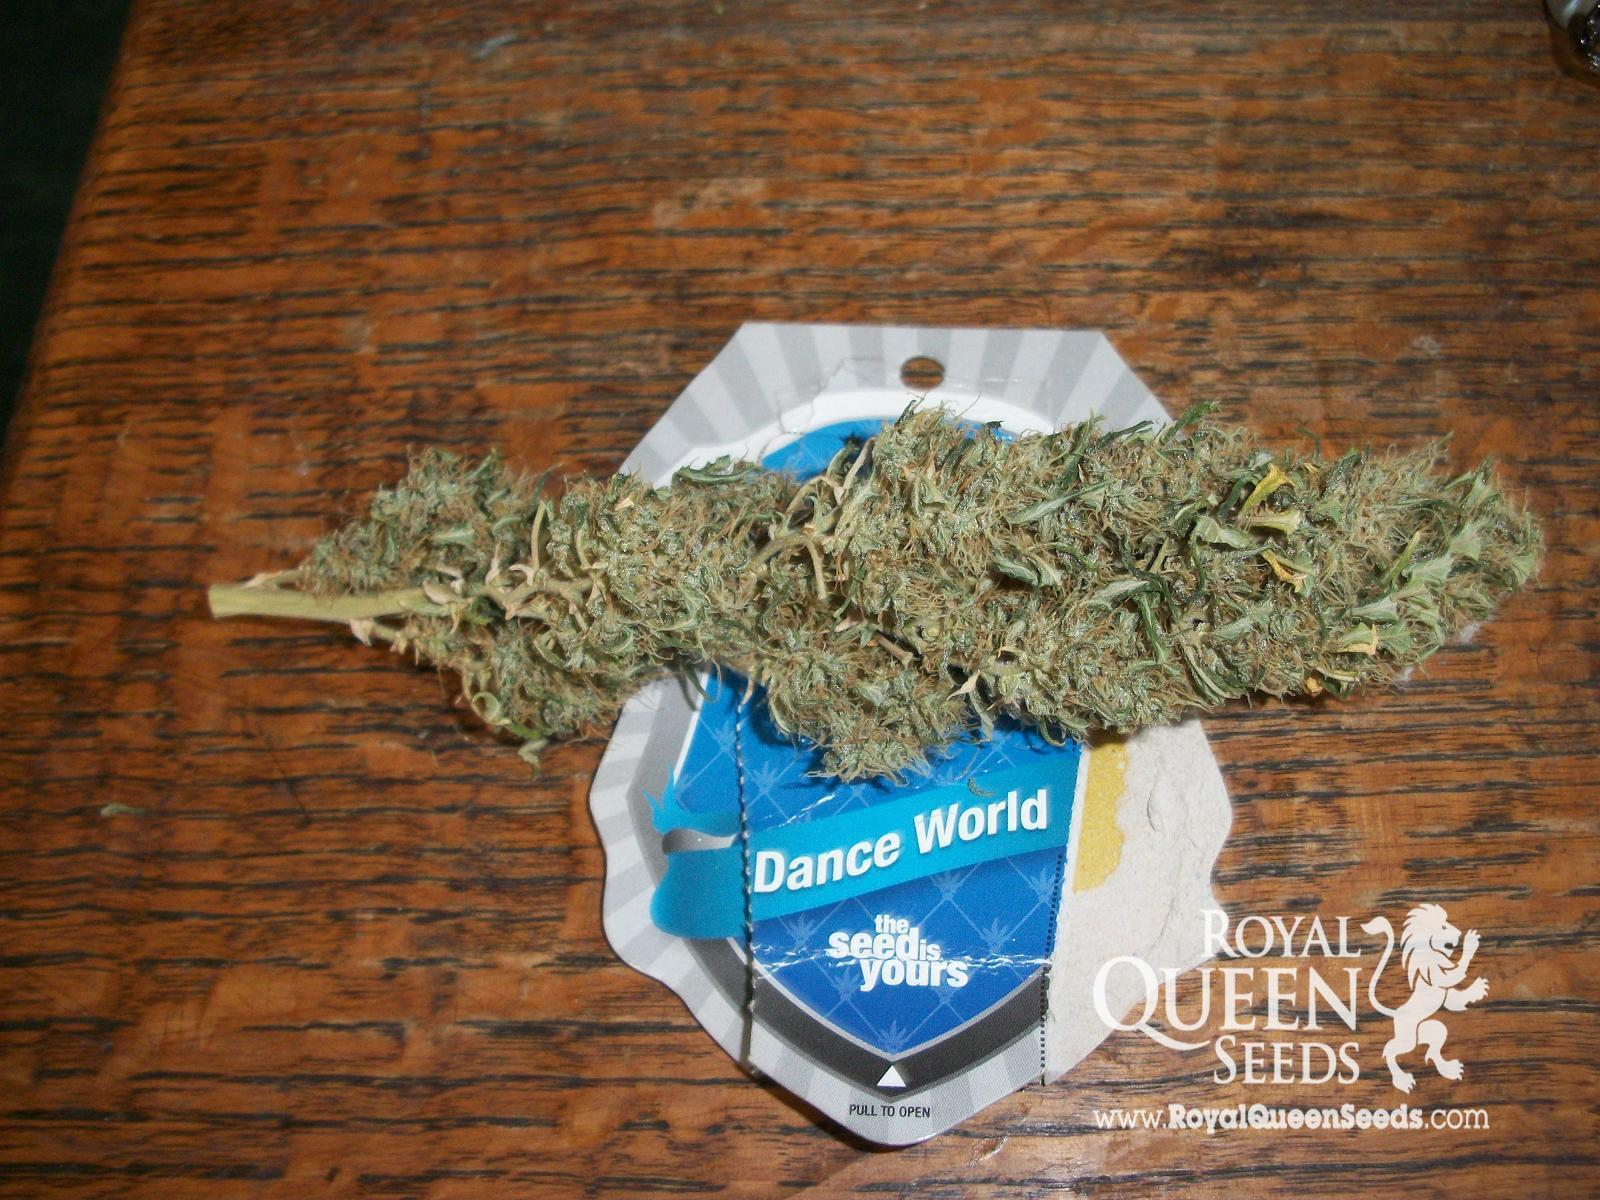 Dance World CBD Cannabis Seeds